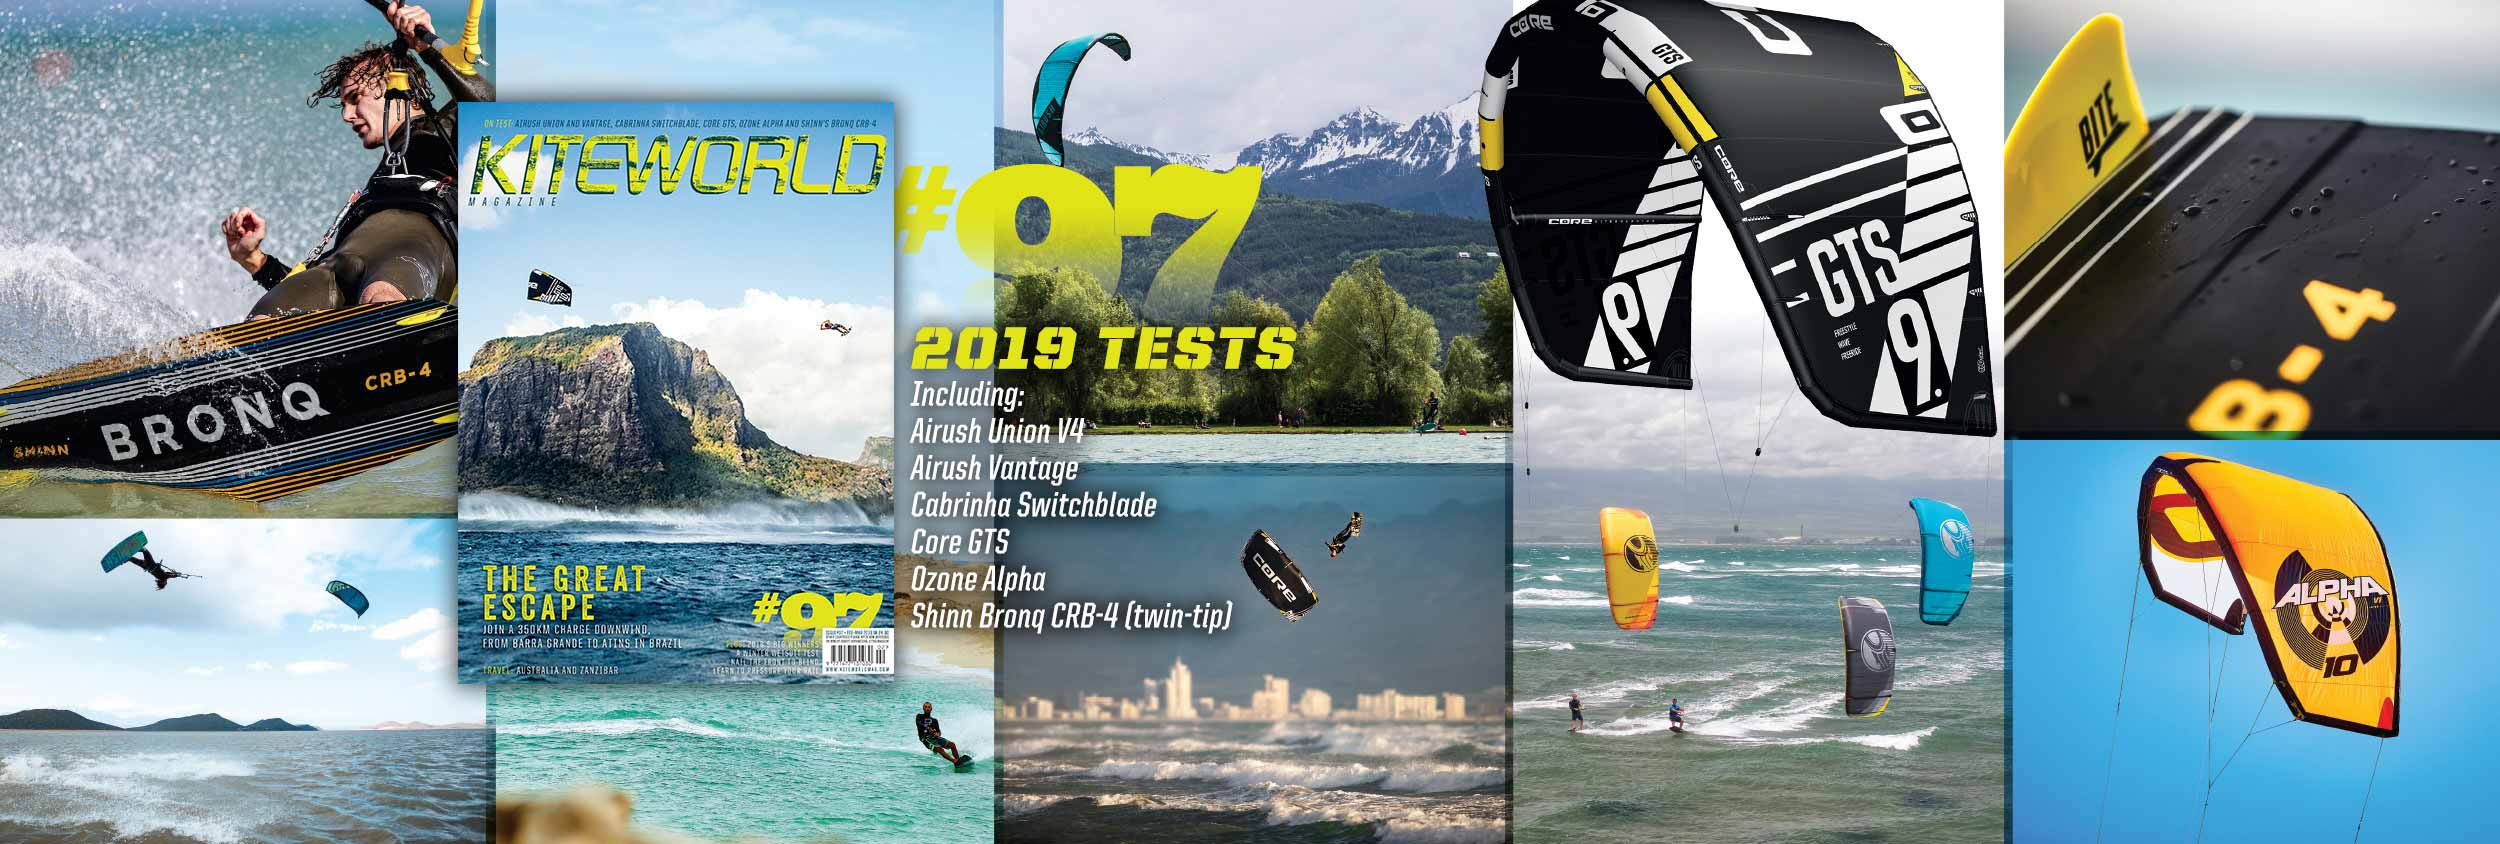 KW#97-2019-tests